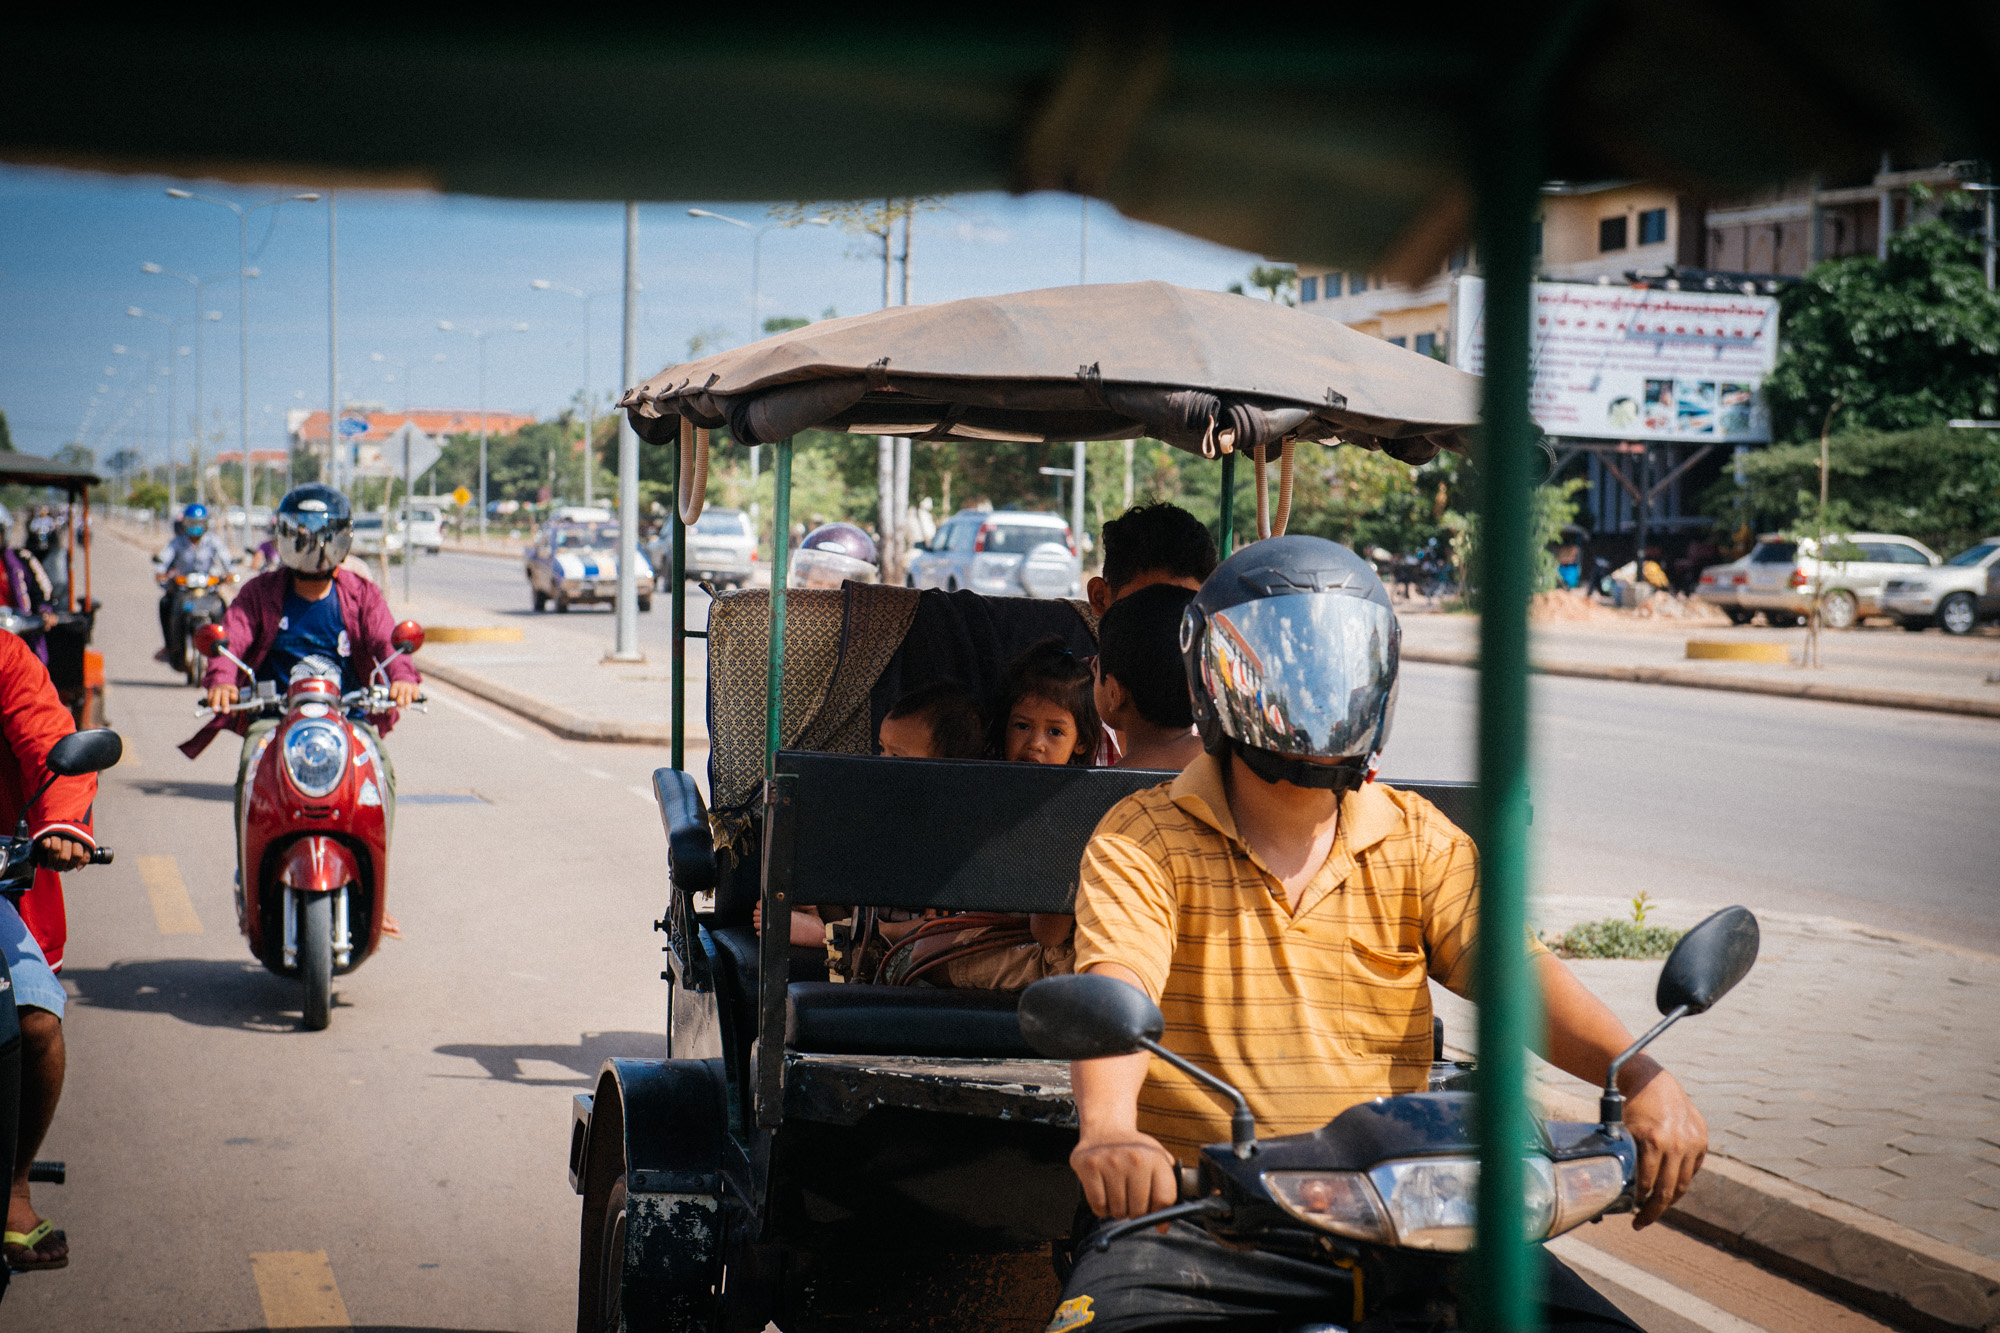 Children accompany their father on a tuk-tuk ride. These adapted motorcycles are an essential mean of transportation in Southeast Asian countries, cheaper than cars and more convenient than bikes.